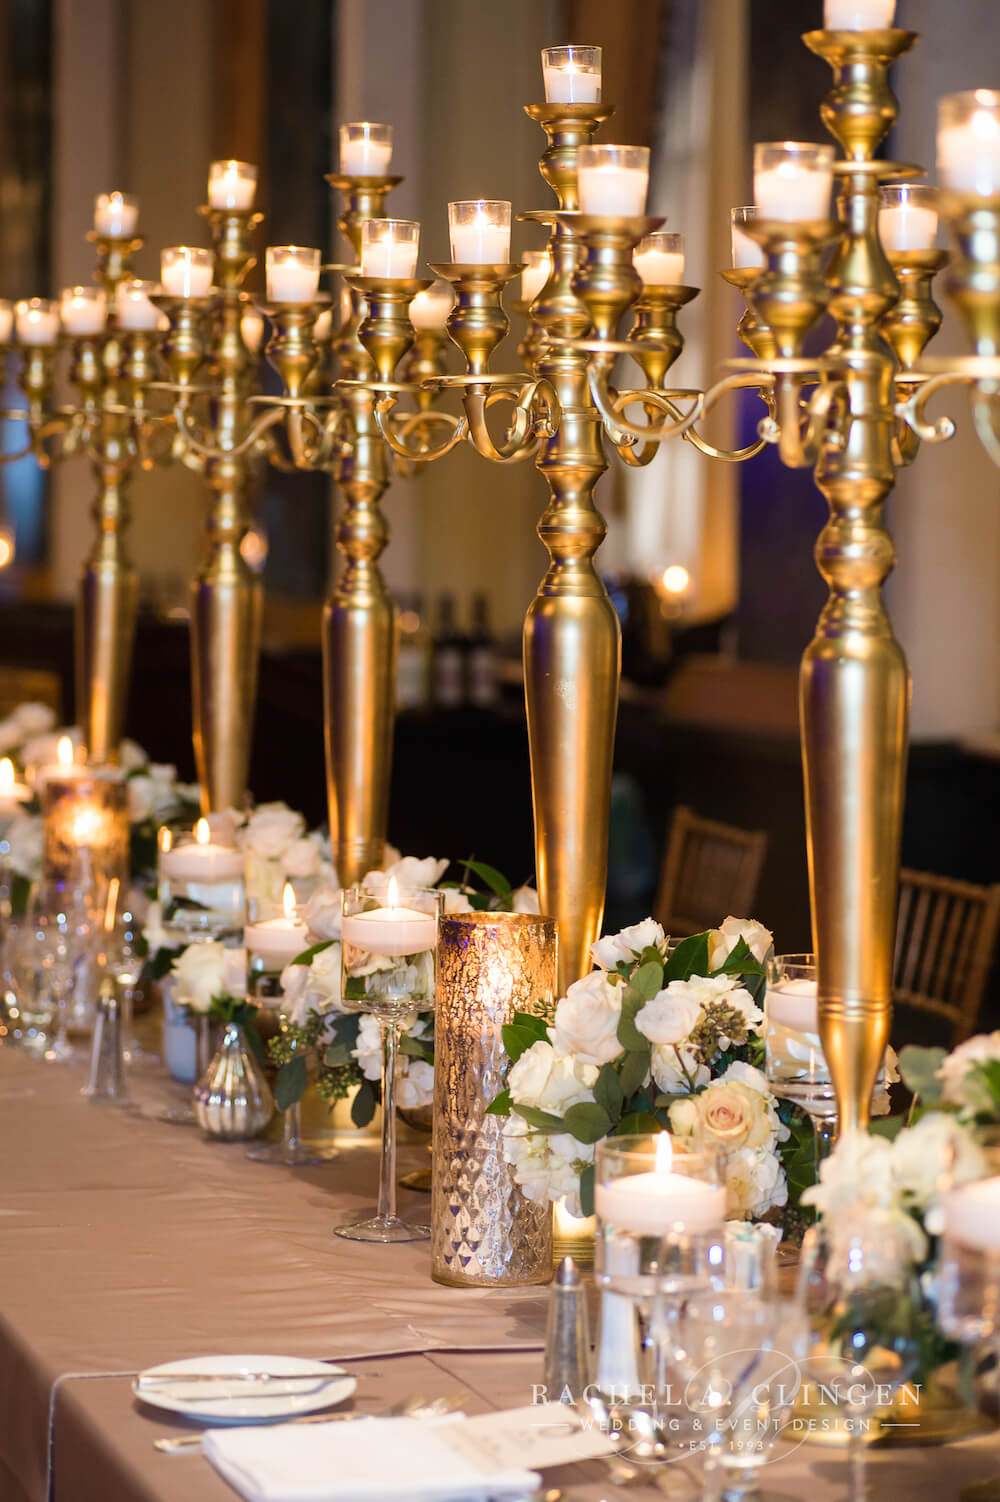 Elegant royal york hotel wedding rachel a clingen for Hotel wedding decor